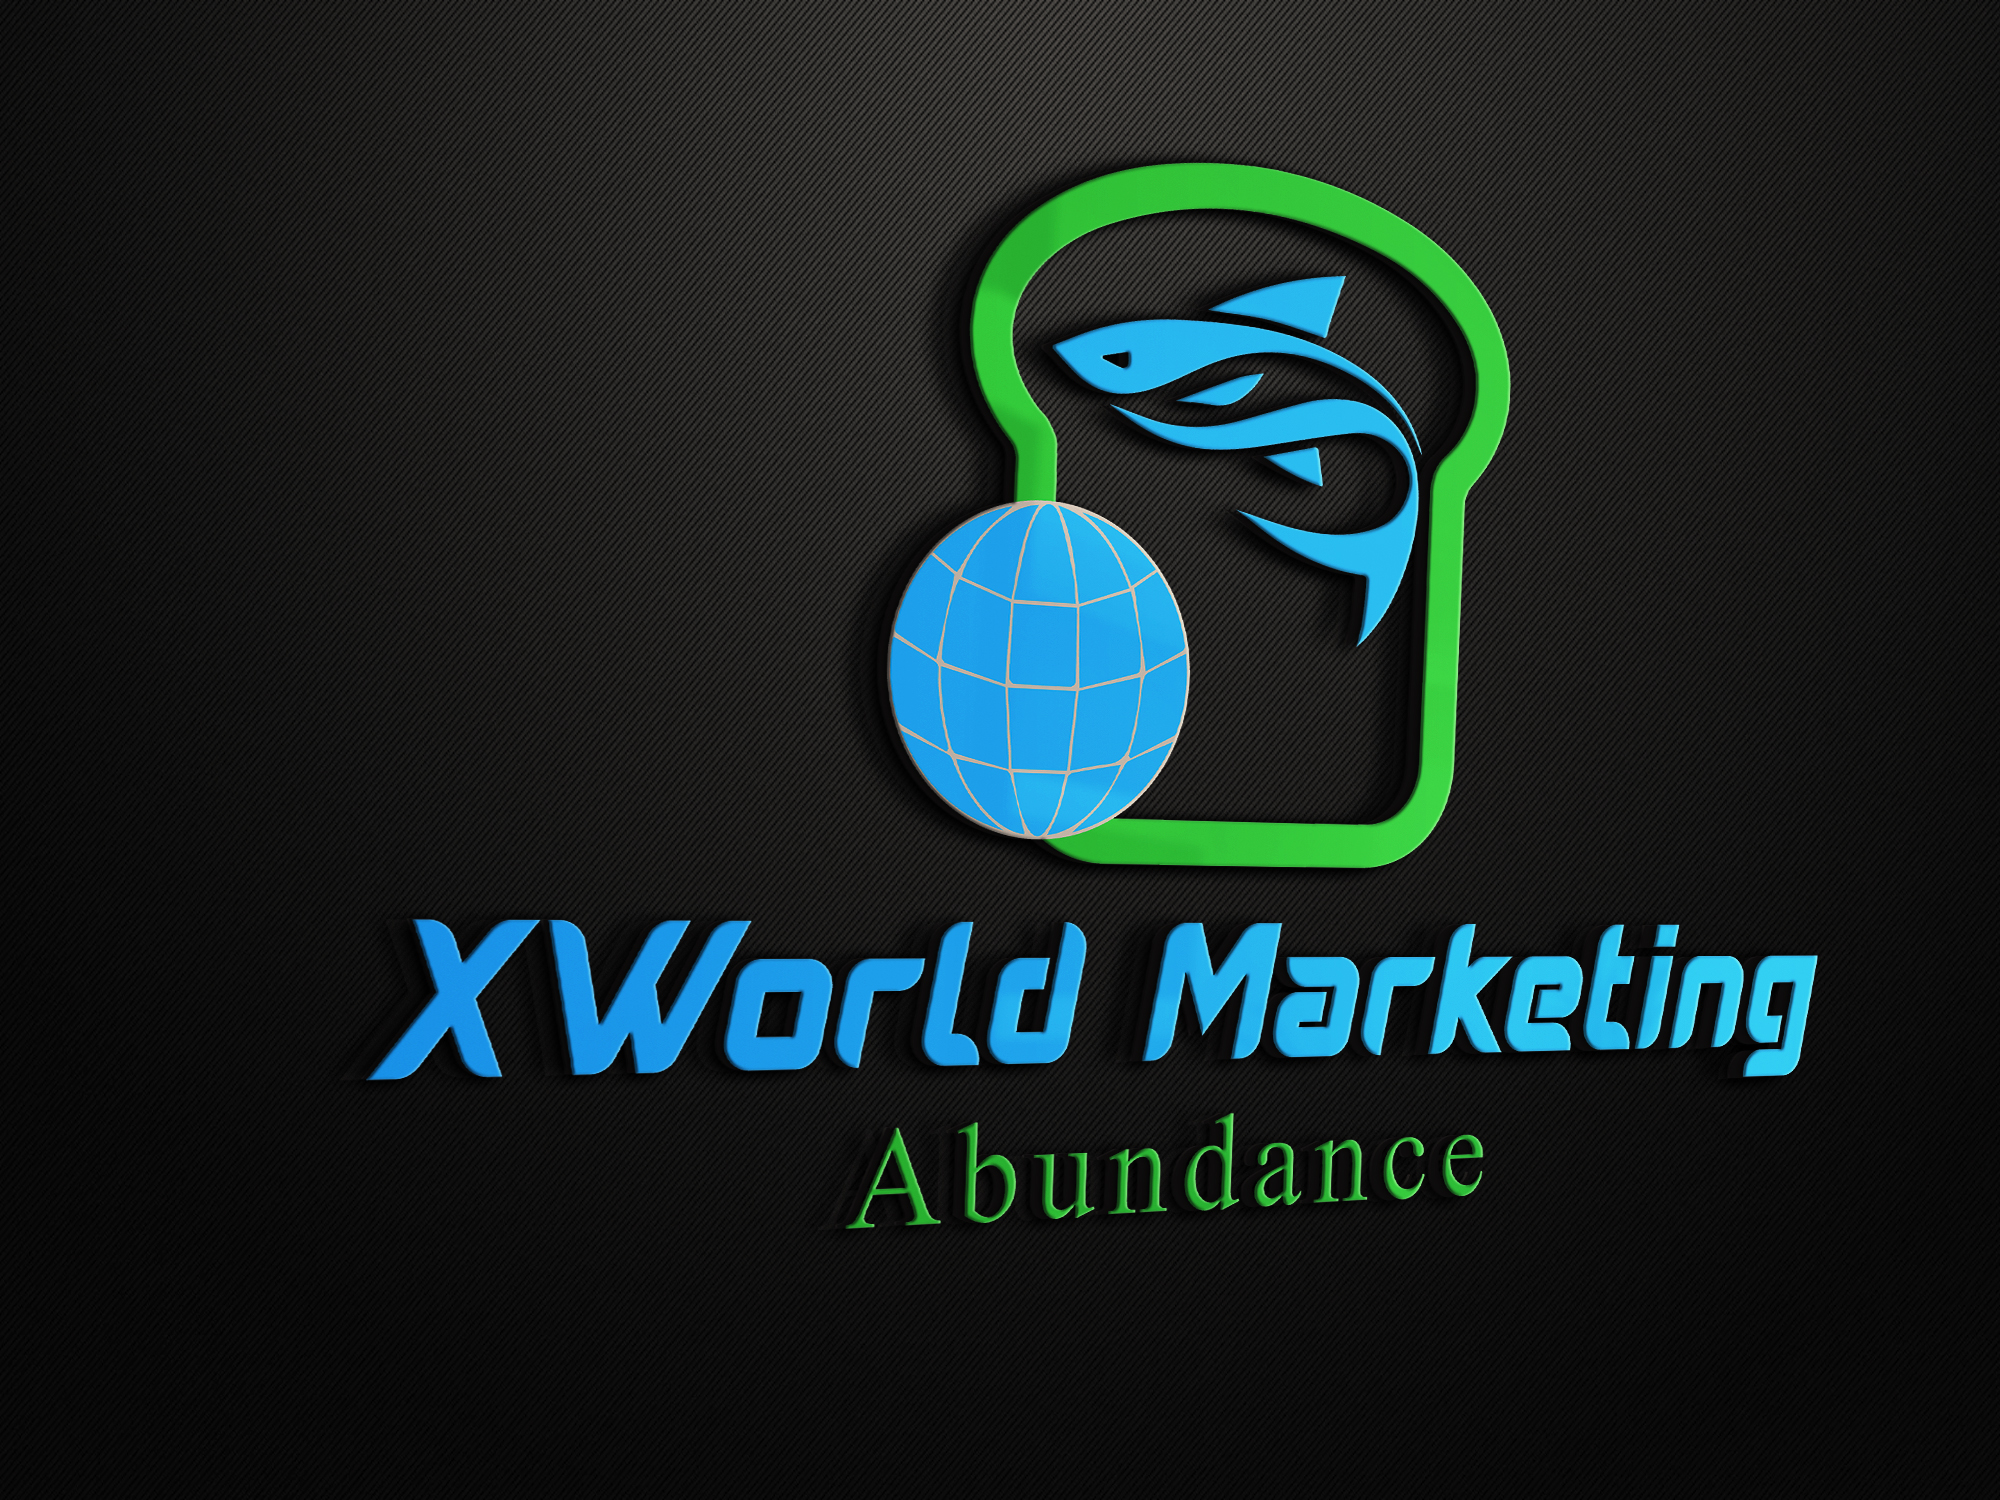 X Word Marketing LLC